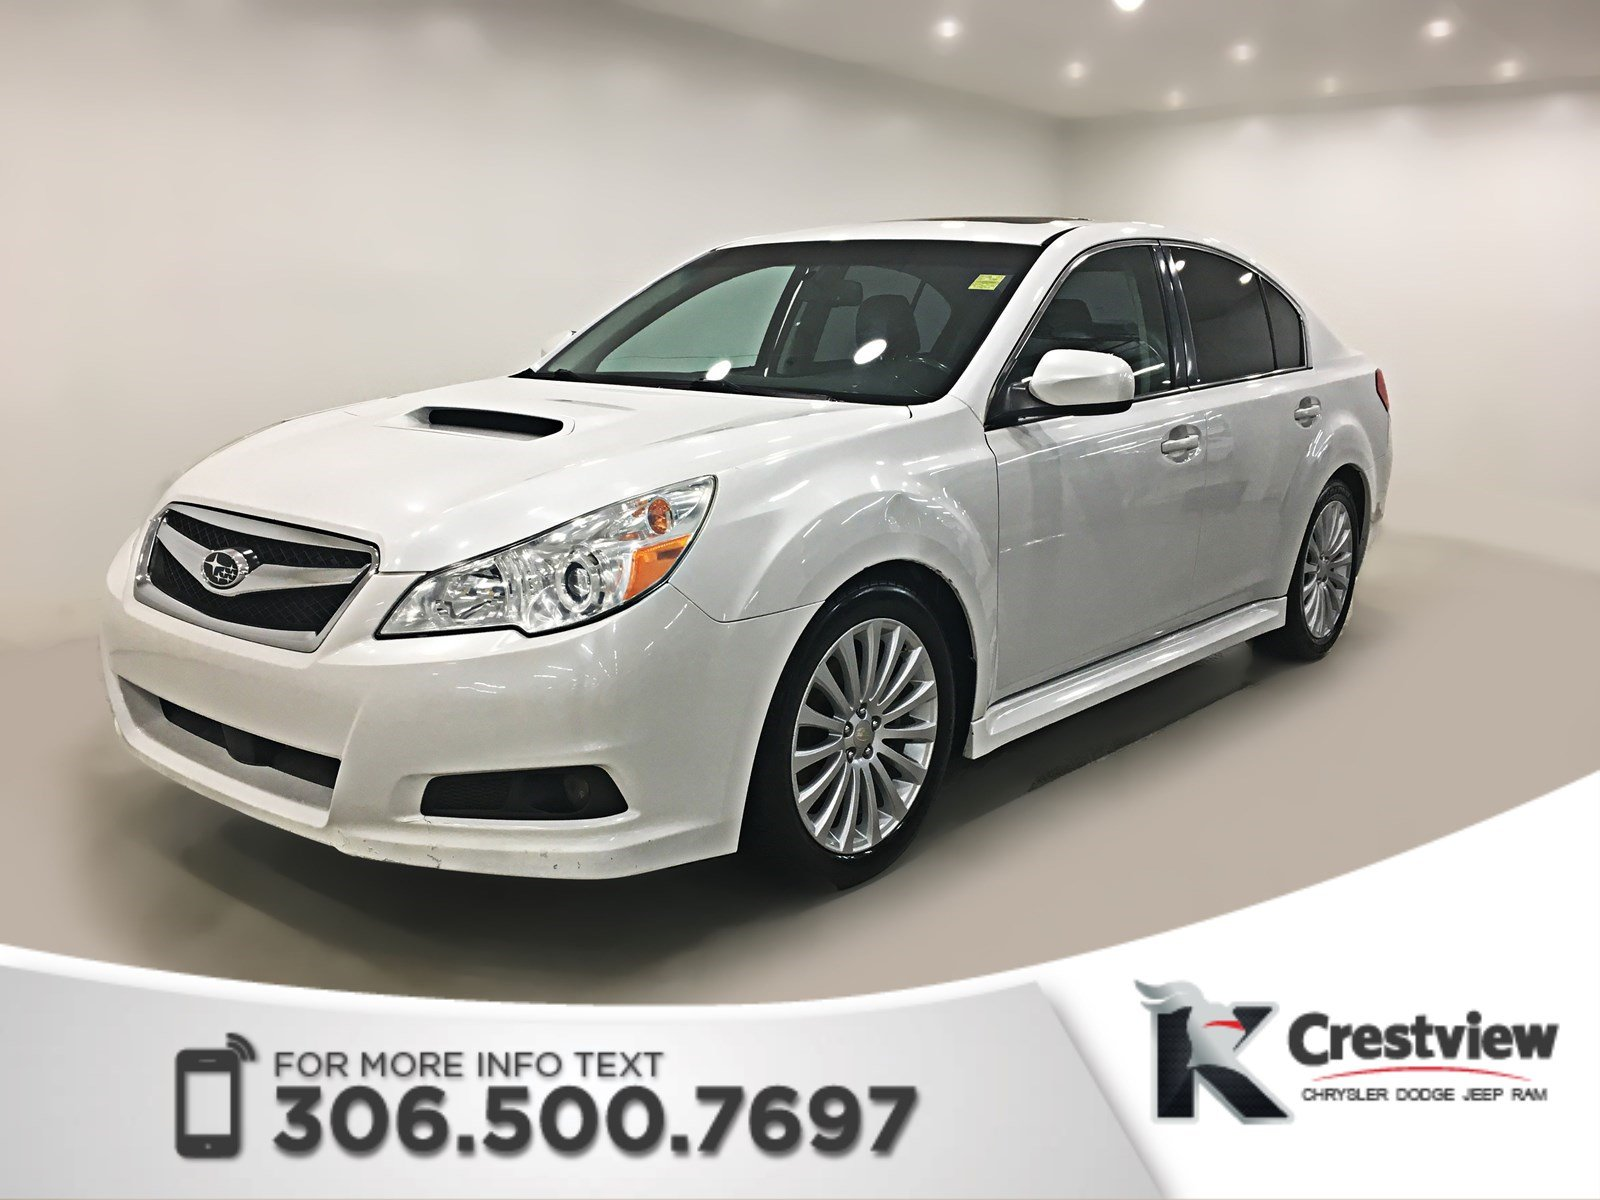 Pre-Owned 2010 Subaru Legacy GT Limited | Leather | Sunroof | Navigation